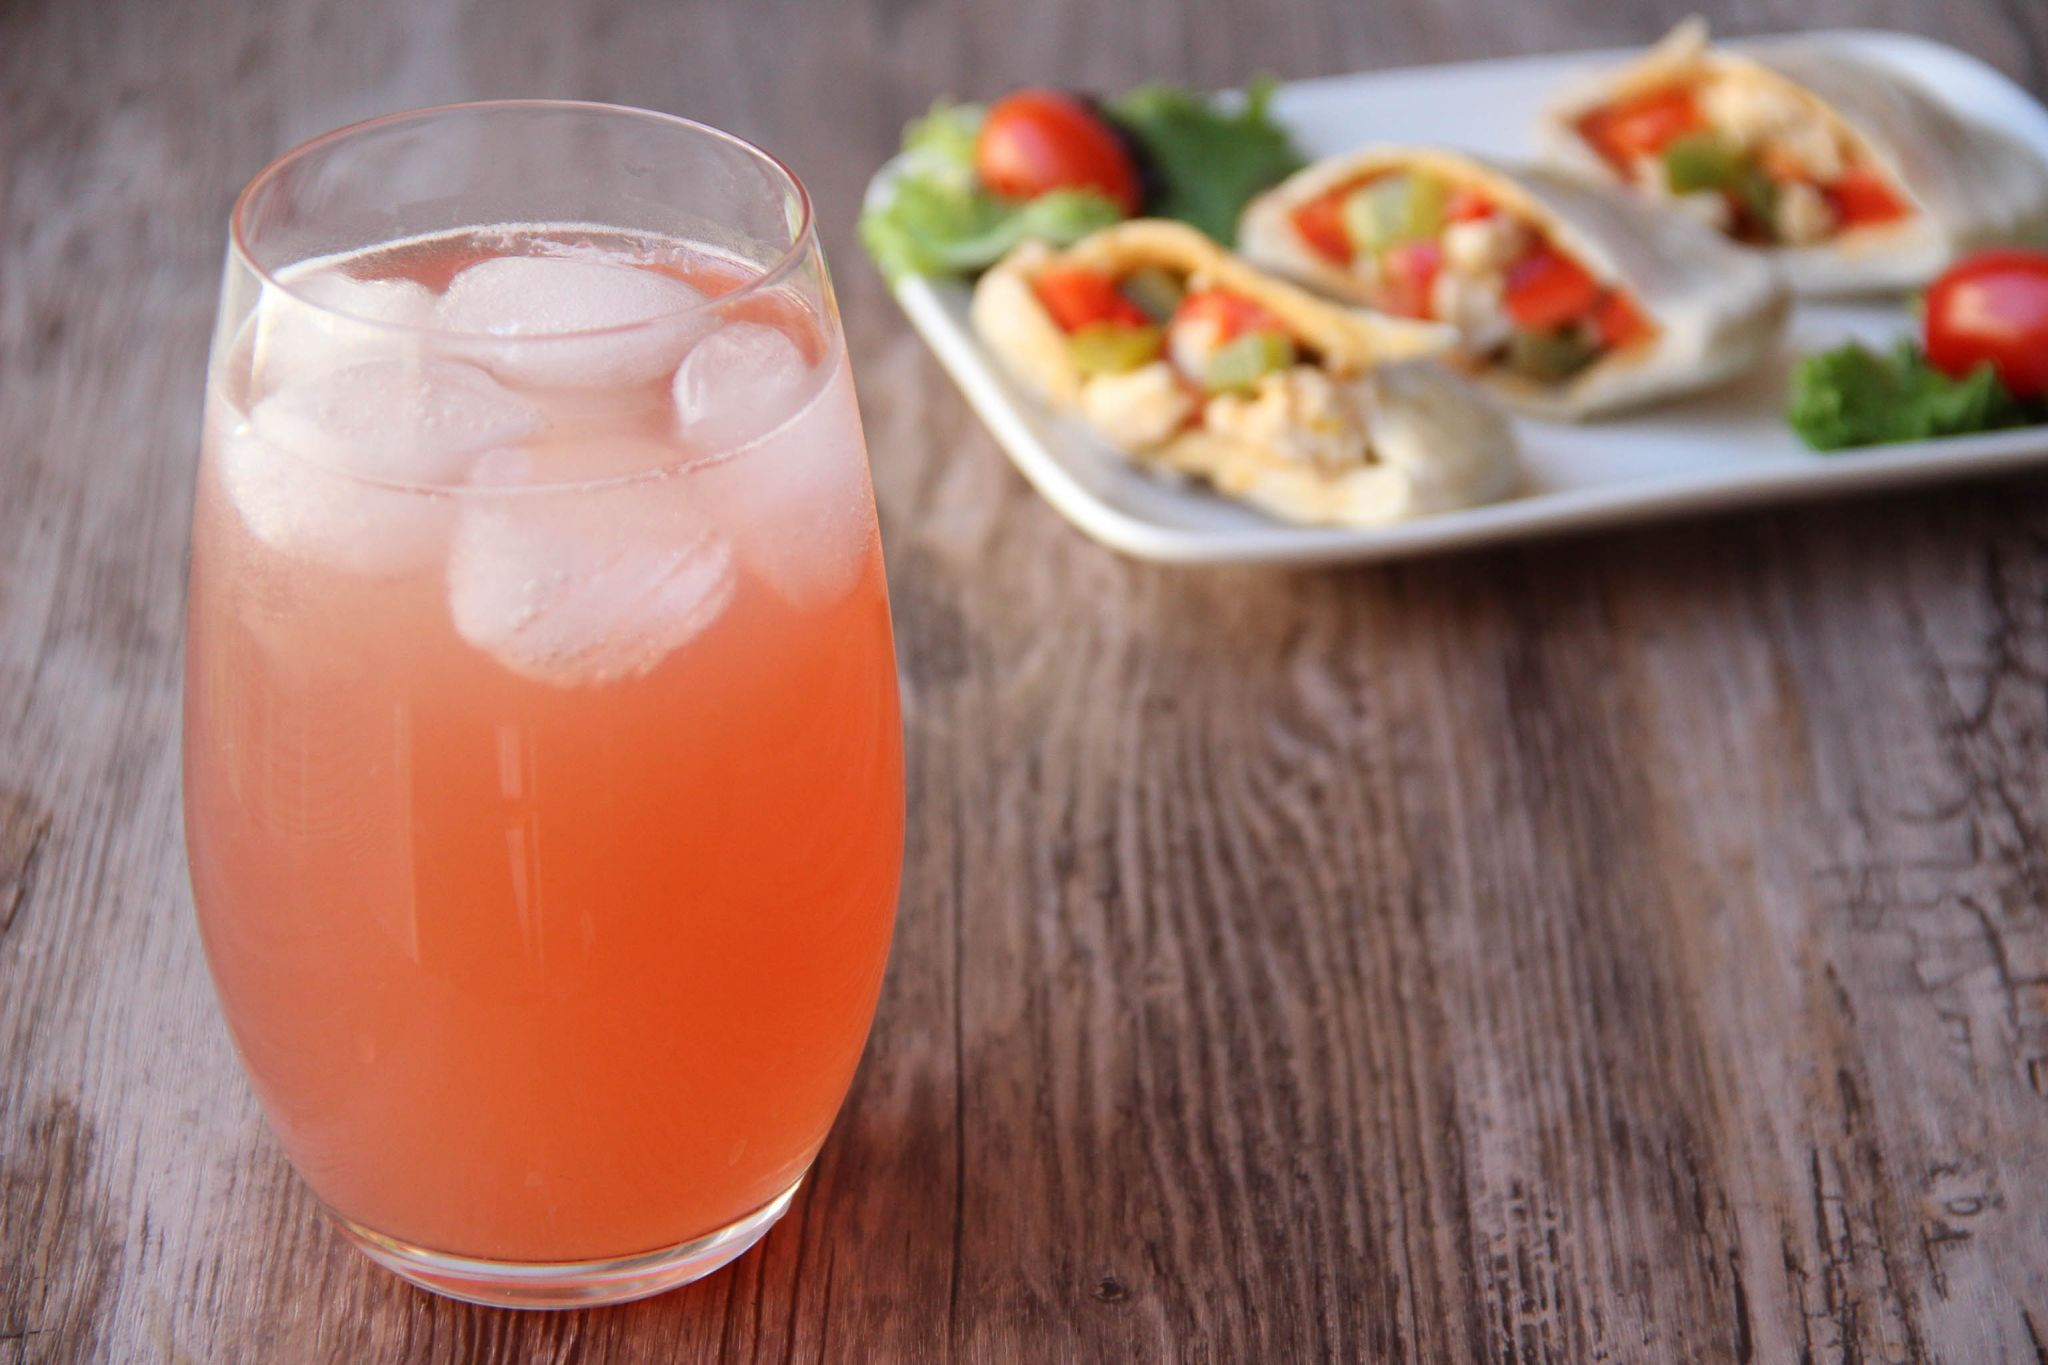 Bay breeze cocktail and spicy chicken pitas